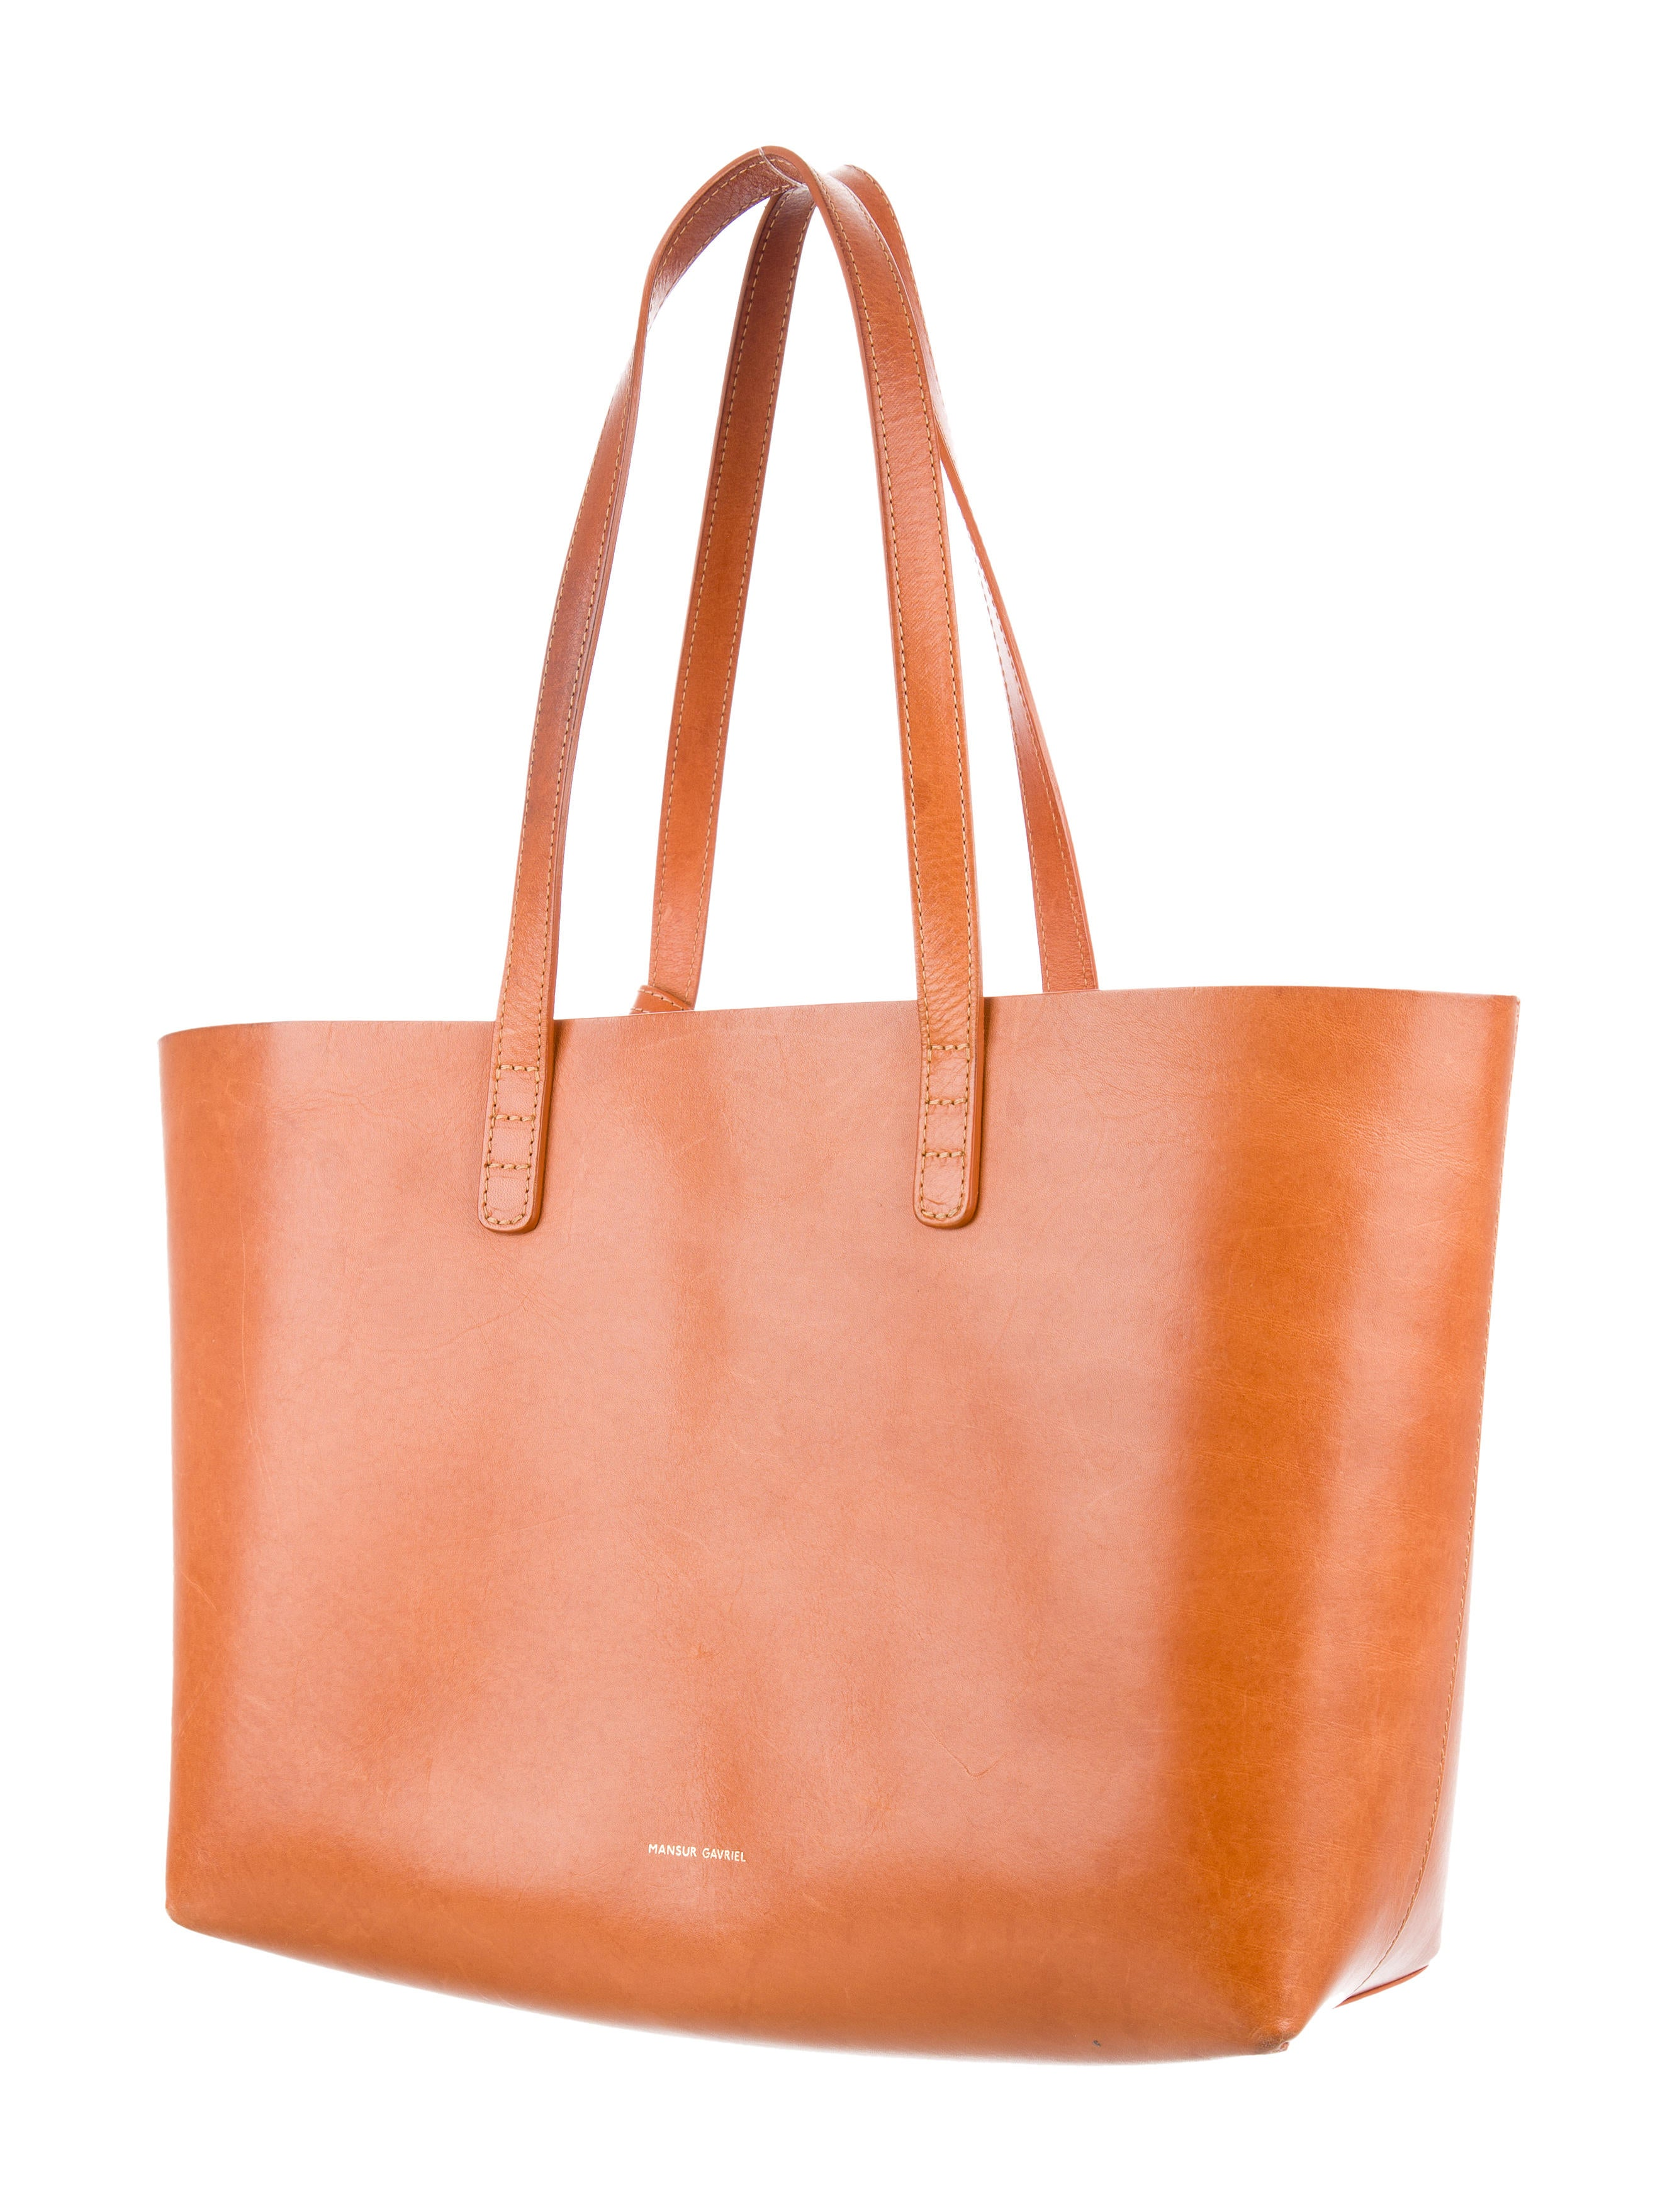 Shop women's totes at sashimicraft.ga Discover a stylish selection of the latest brand name and designer fashions all at a great value.